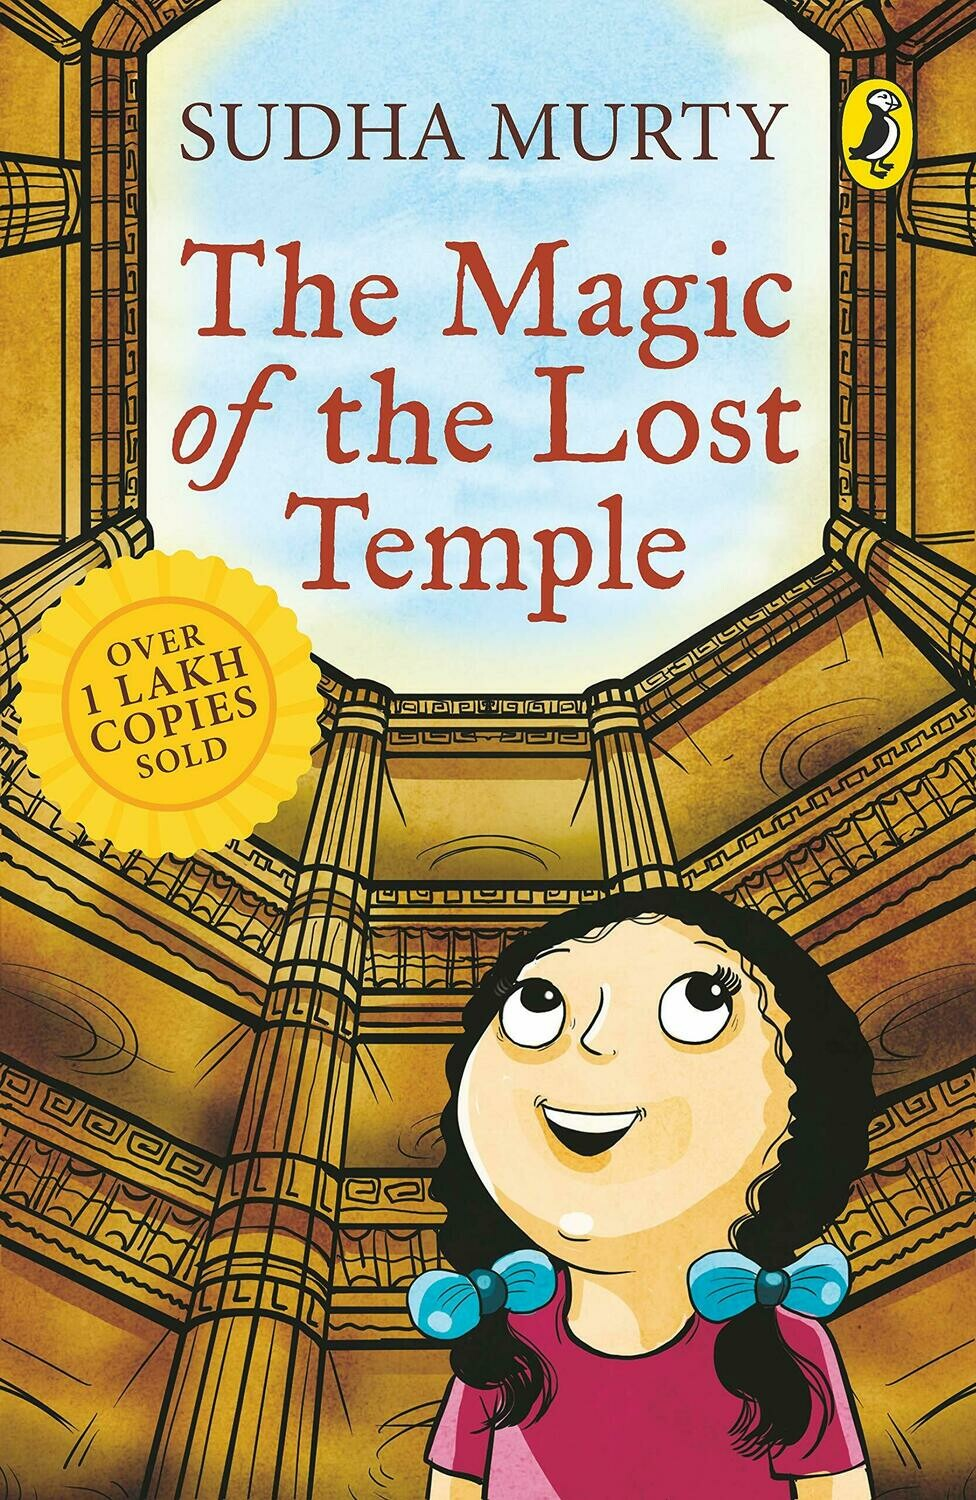 The Magic of the Lost Temple